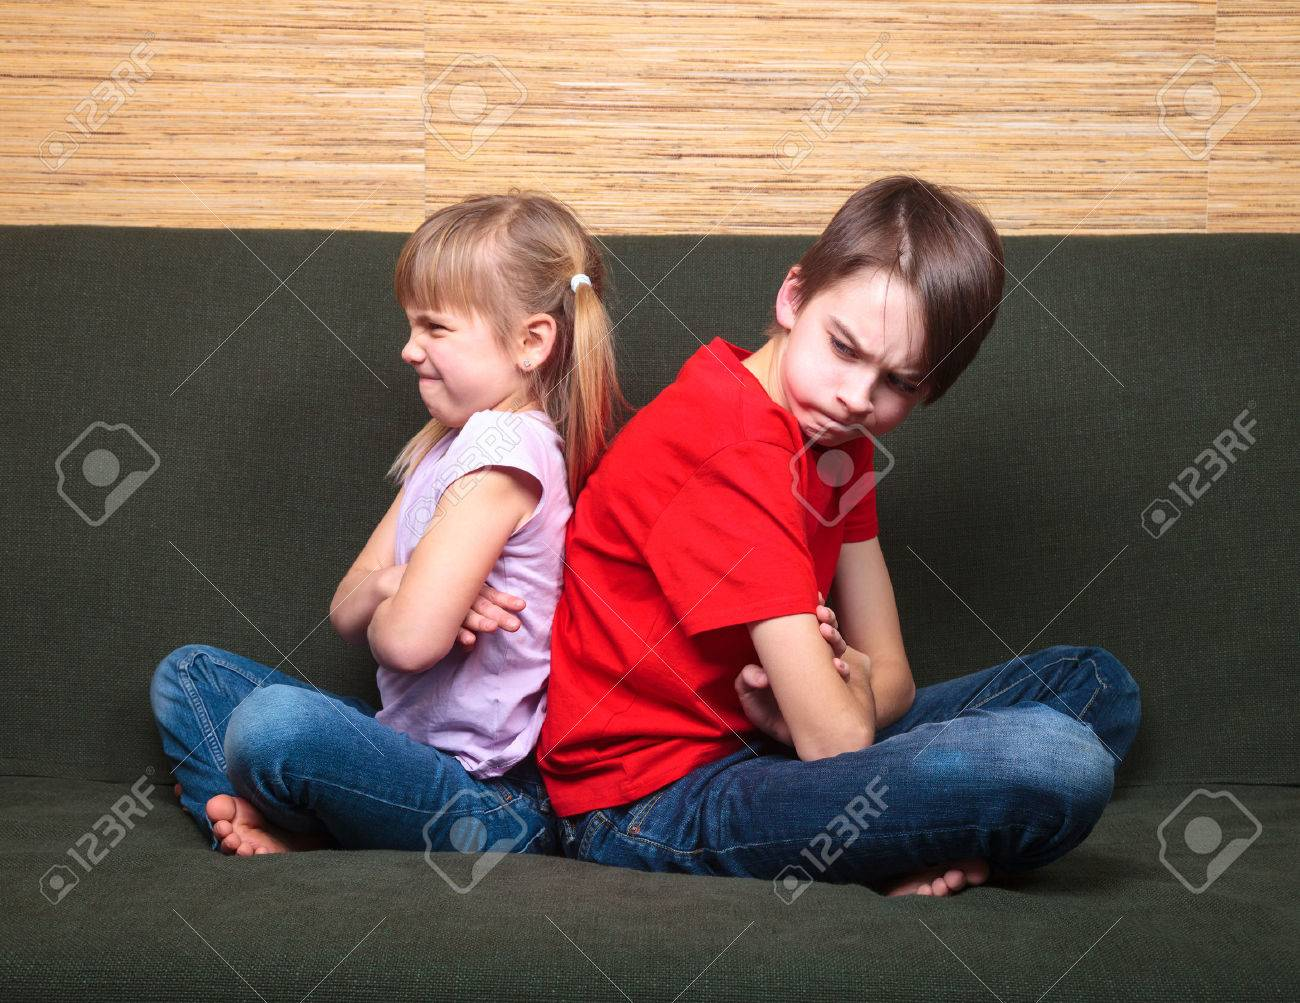 Brother and sister wearing casual clothes sitting on a green sofa at home arms crossed back to back angry with each other - 51199571